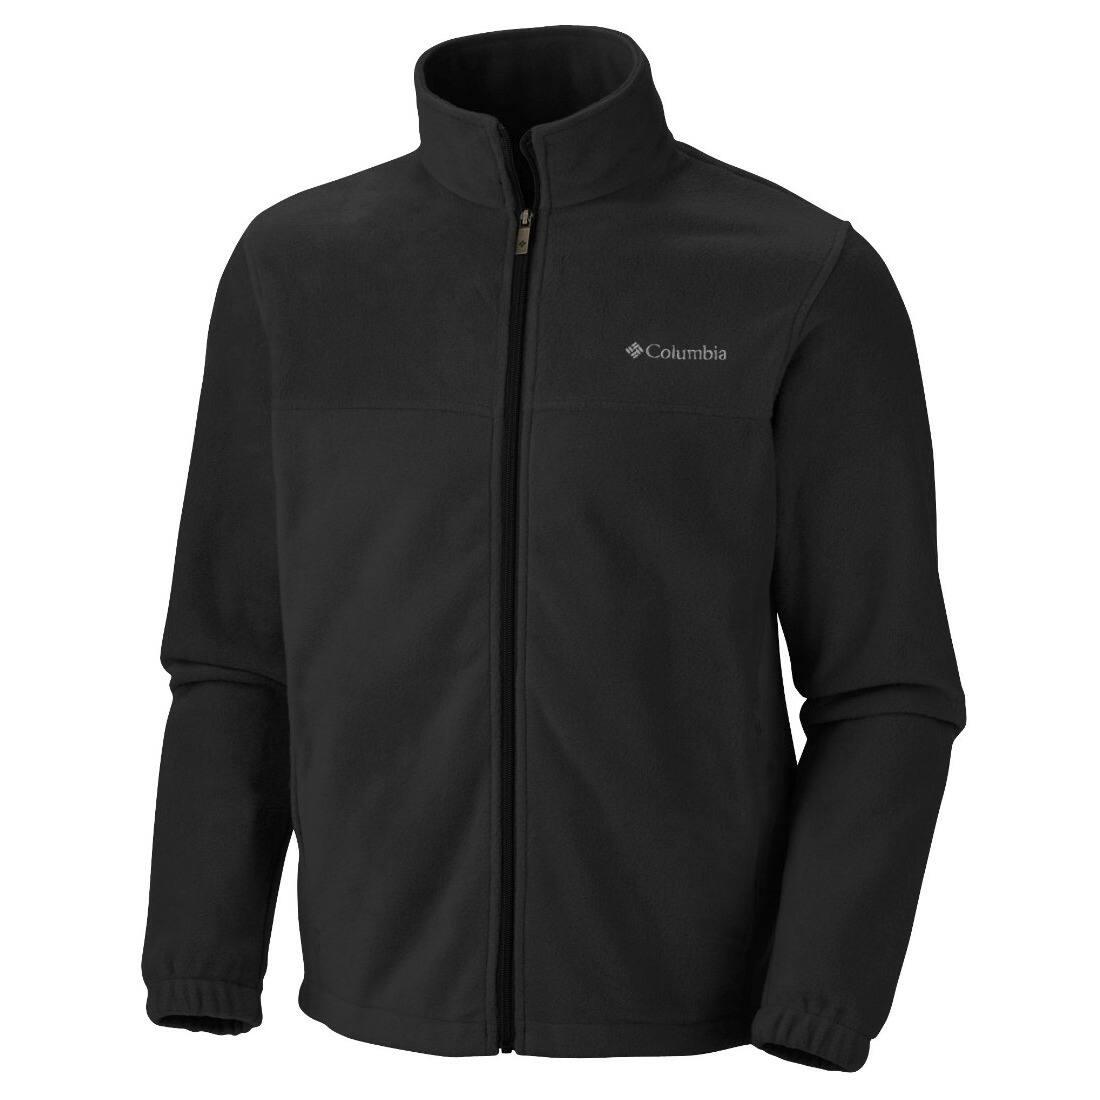 Columbia Mens Original Warm Winter Fleece Full Zip Up Jacket $24.99 or Buy 2 for 39.99